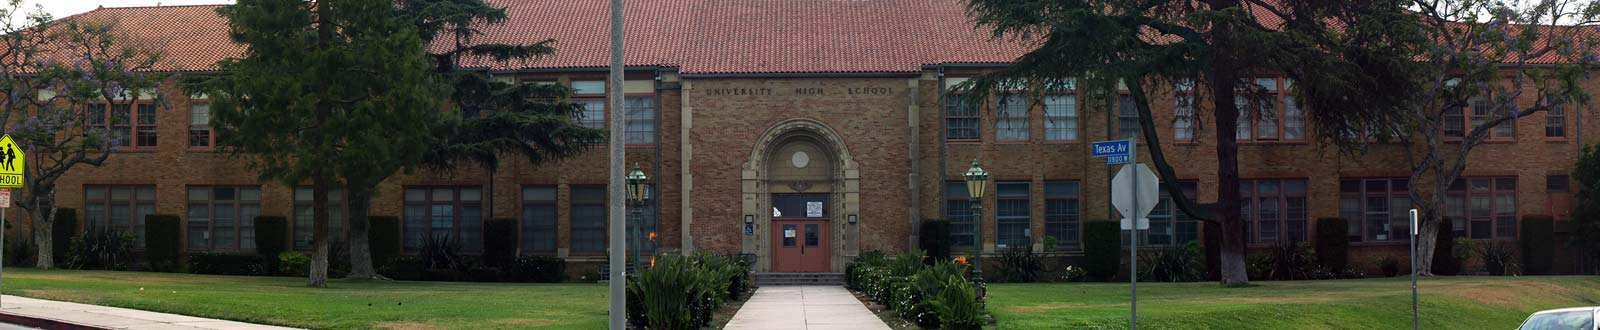 University High School in Los Angeles